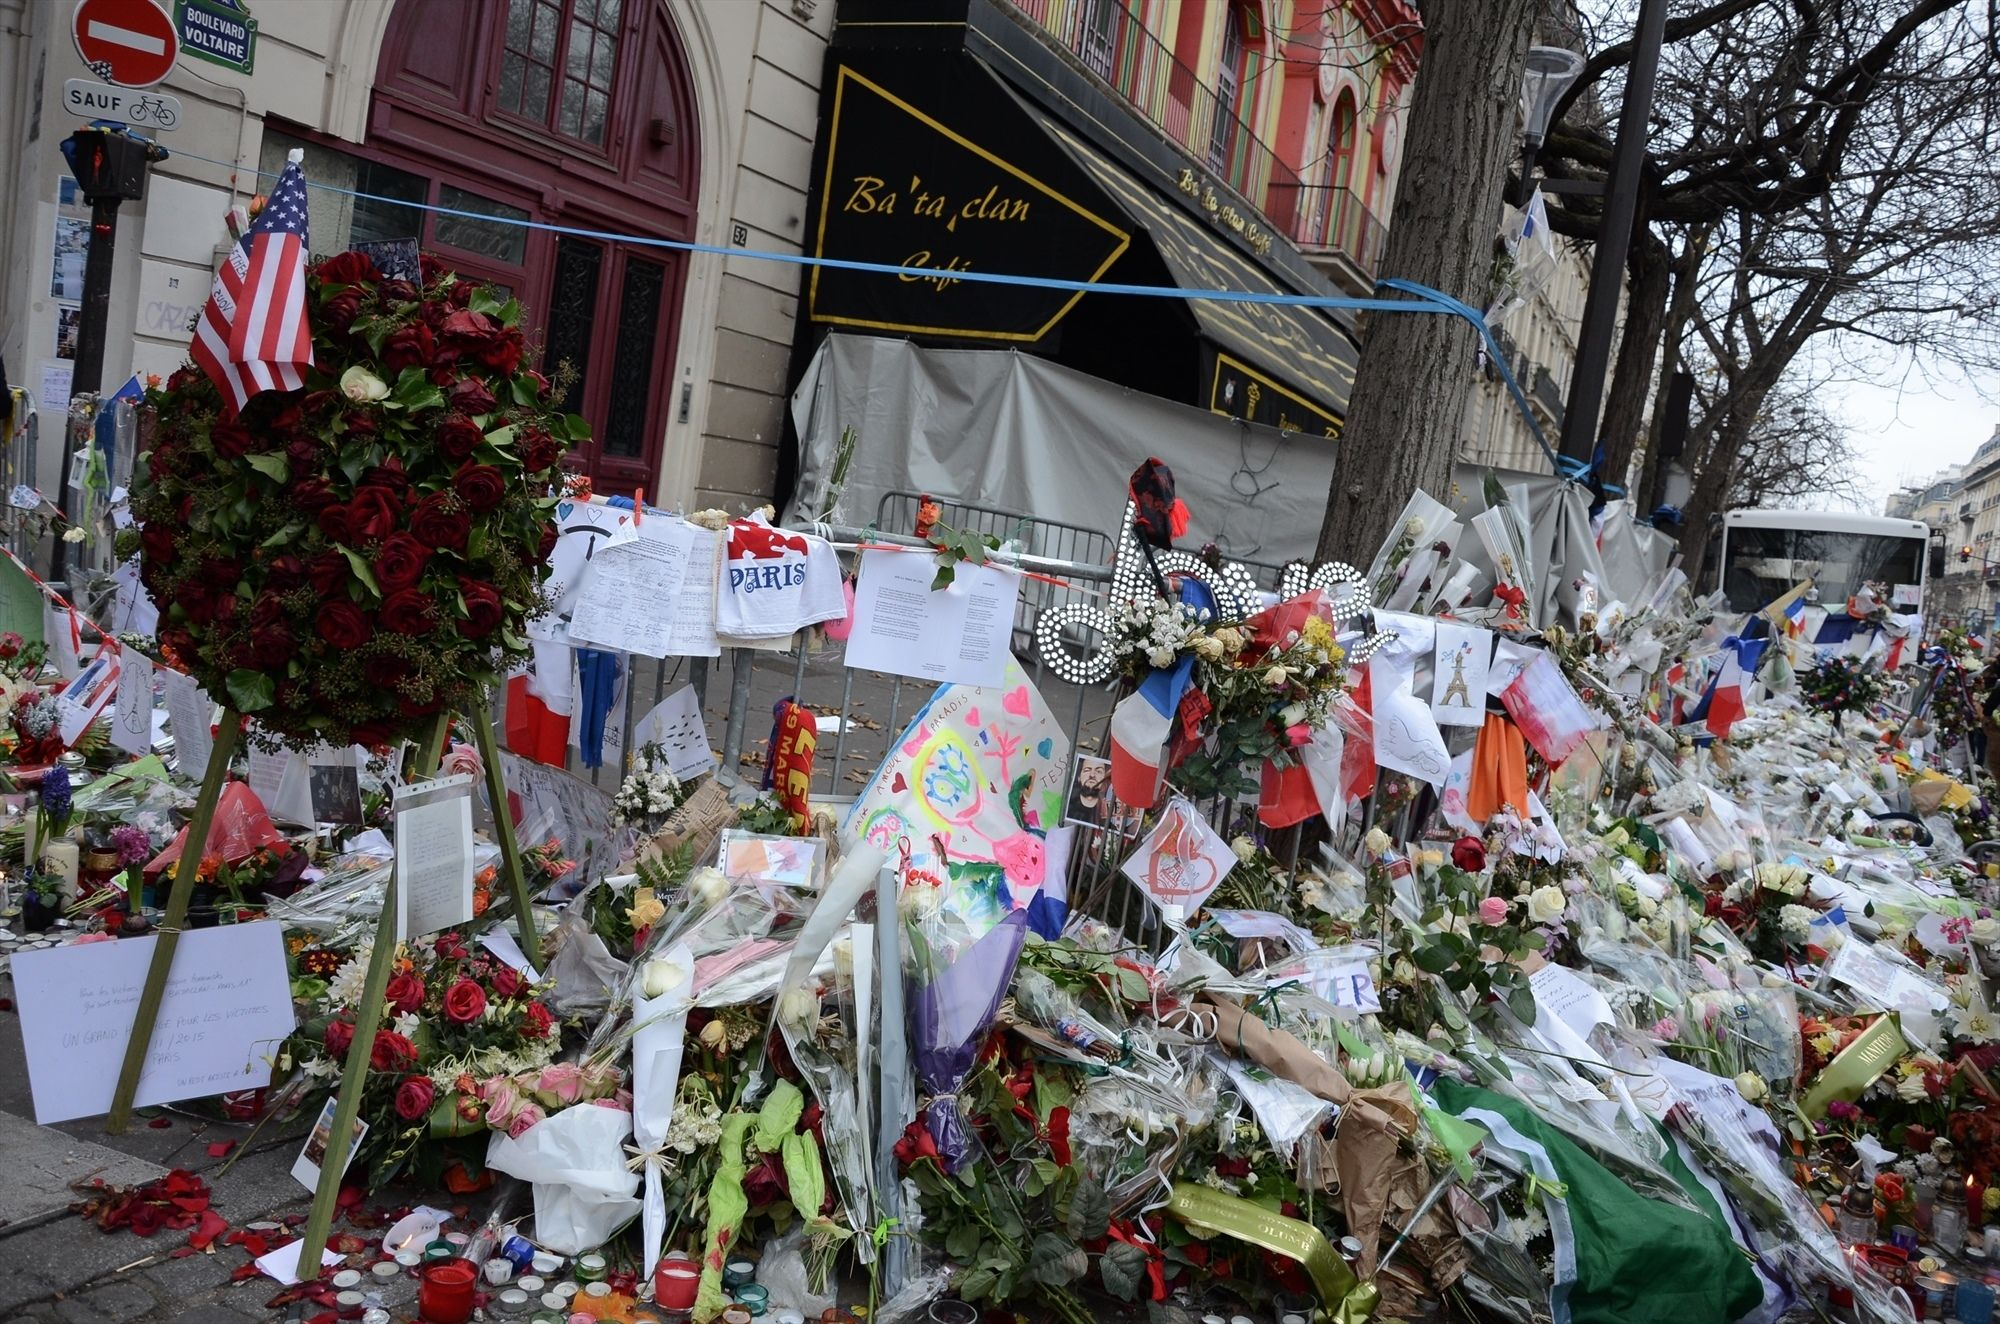 Parisian's react to the 2015 terrorist attacks with bouquets of flowers near the Bataclan. Getty